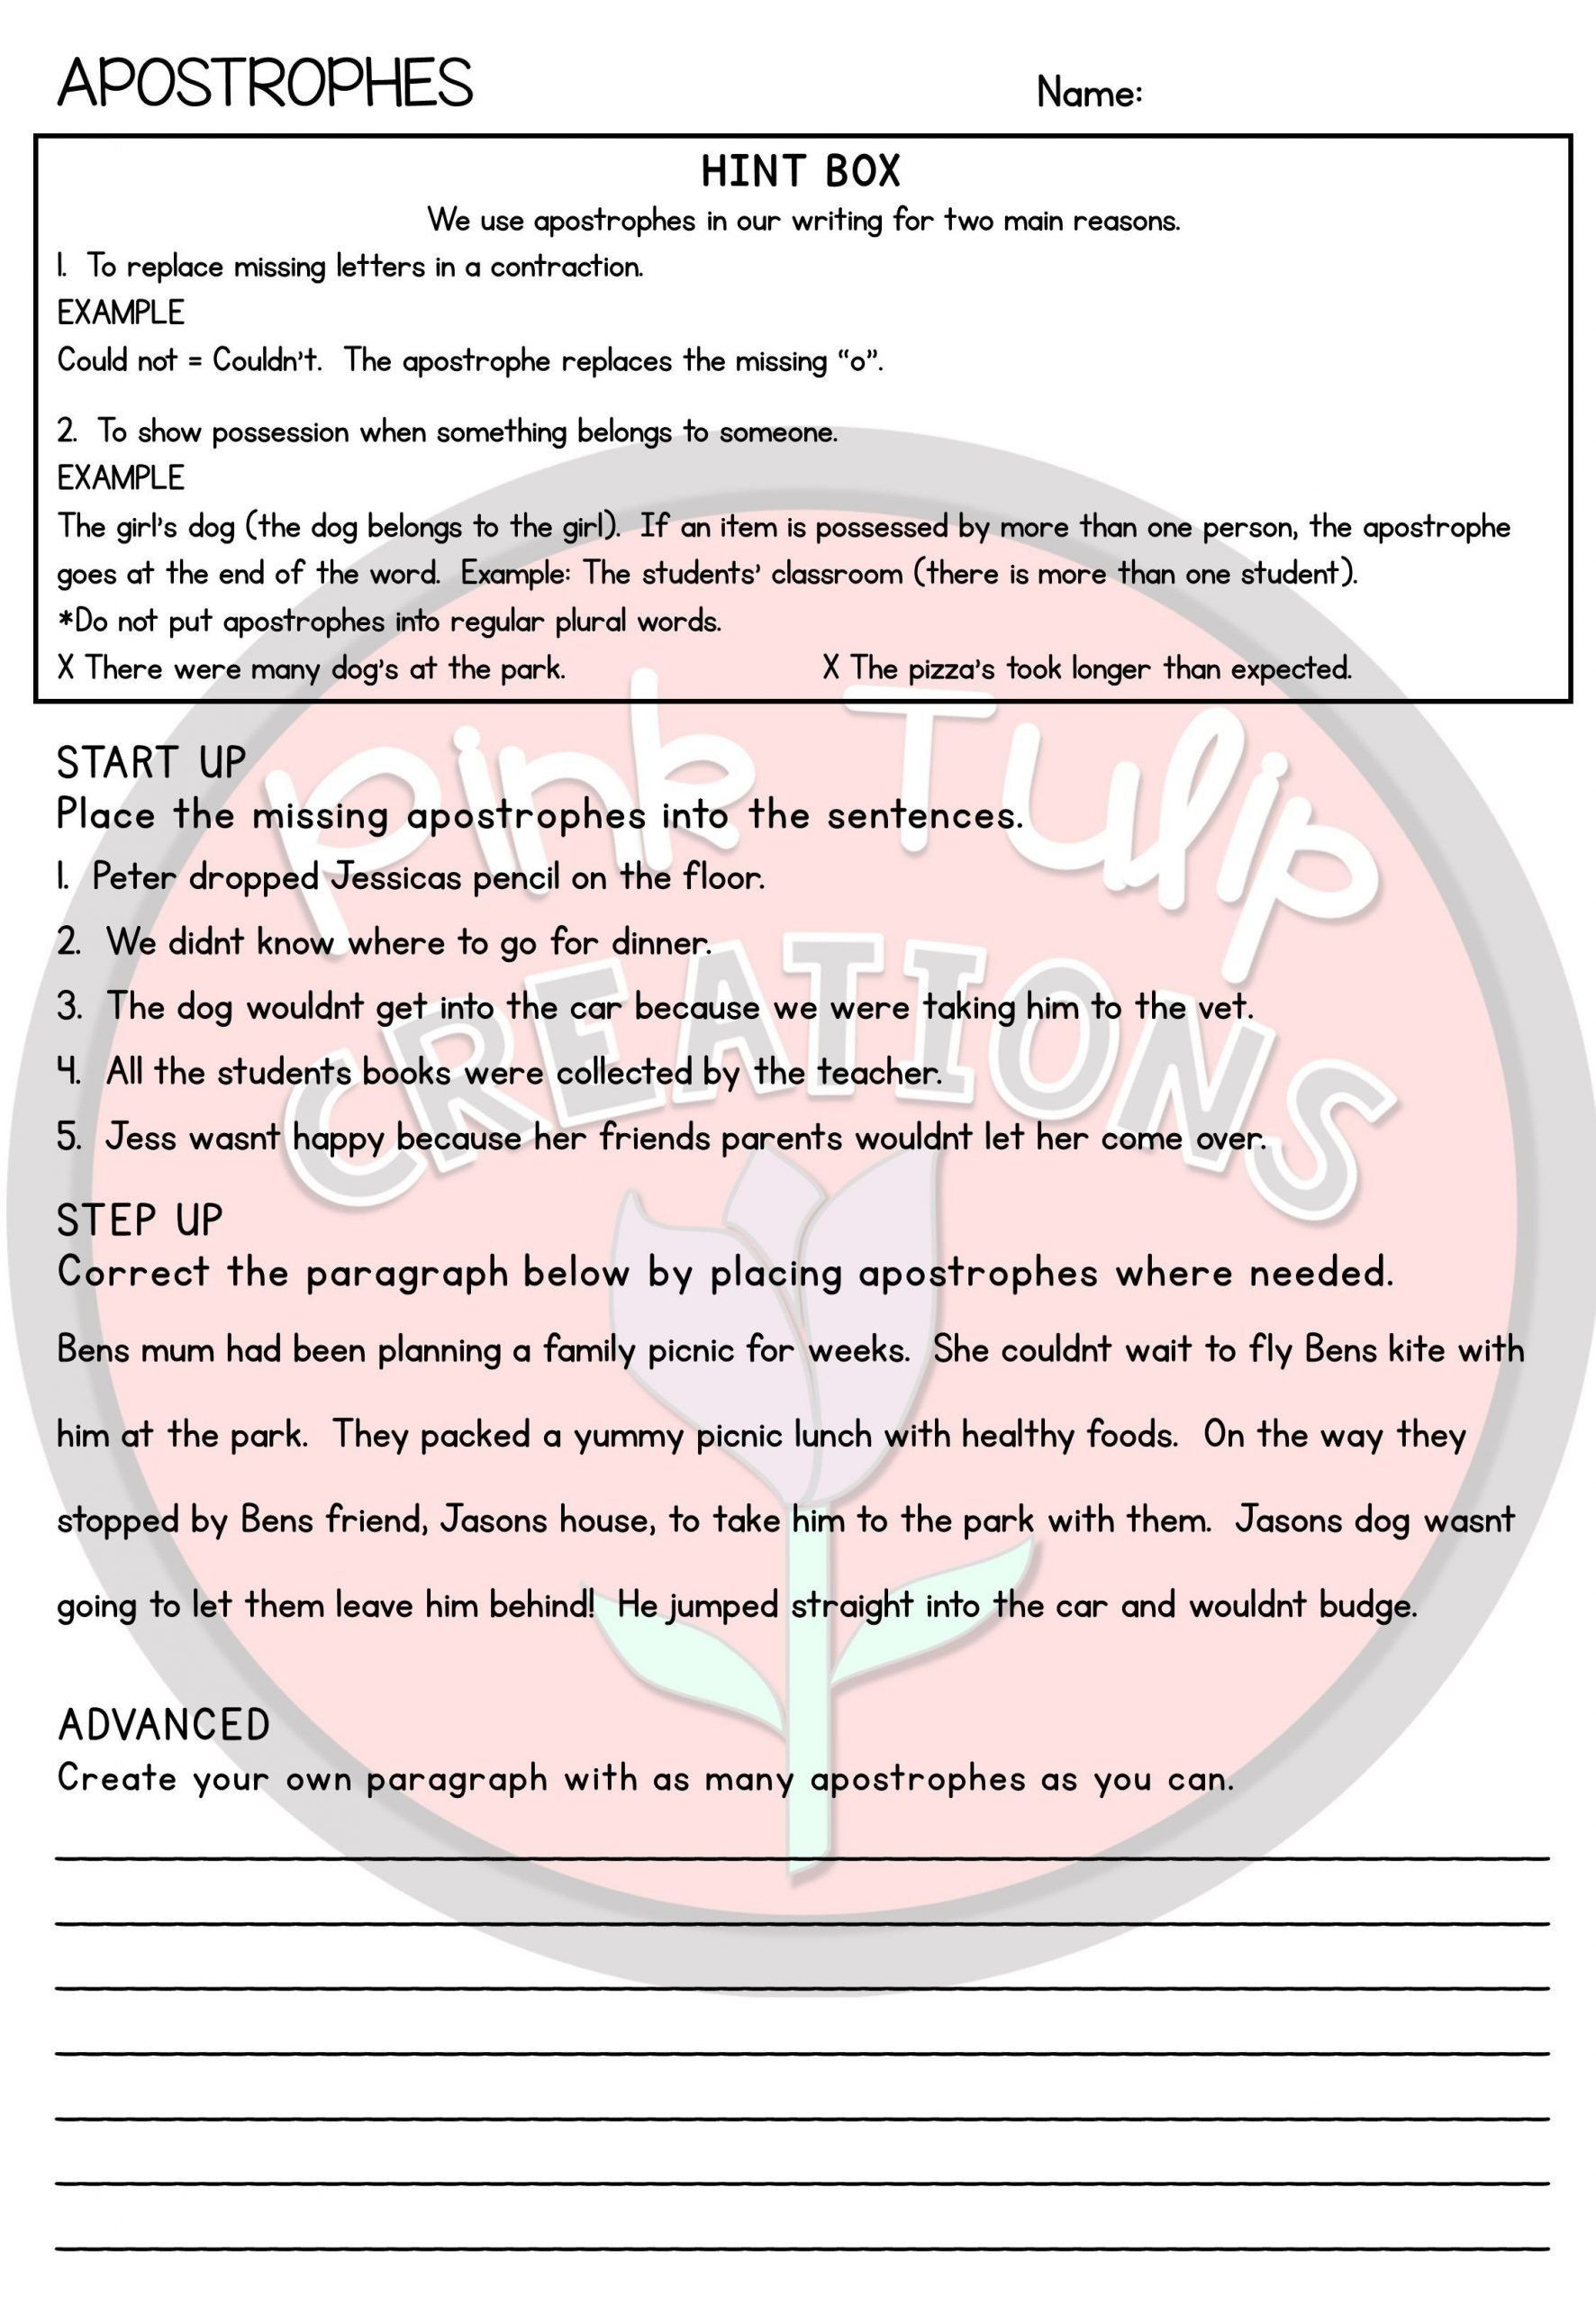 Draw Conclusions Worksheet 3rd Grade Drawing Conclusions Worksheets 5th Grade Grammar Worksheet